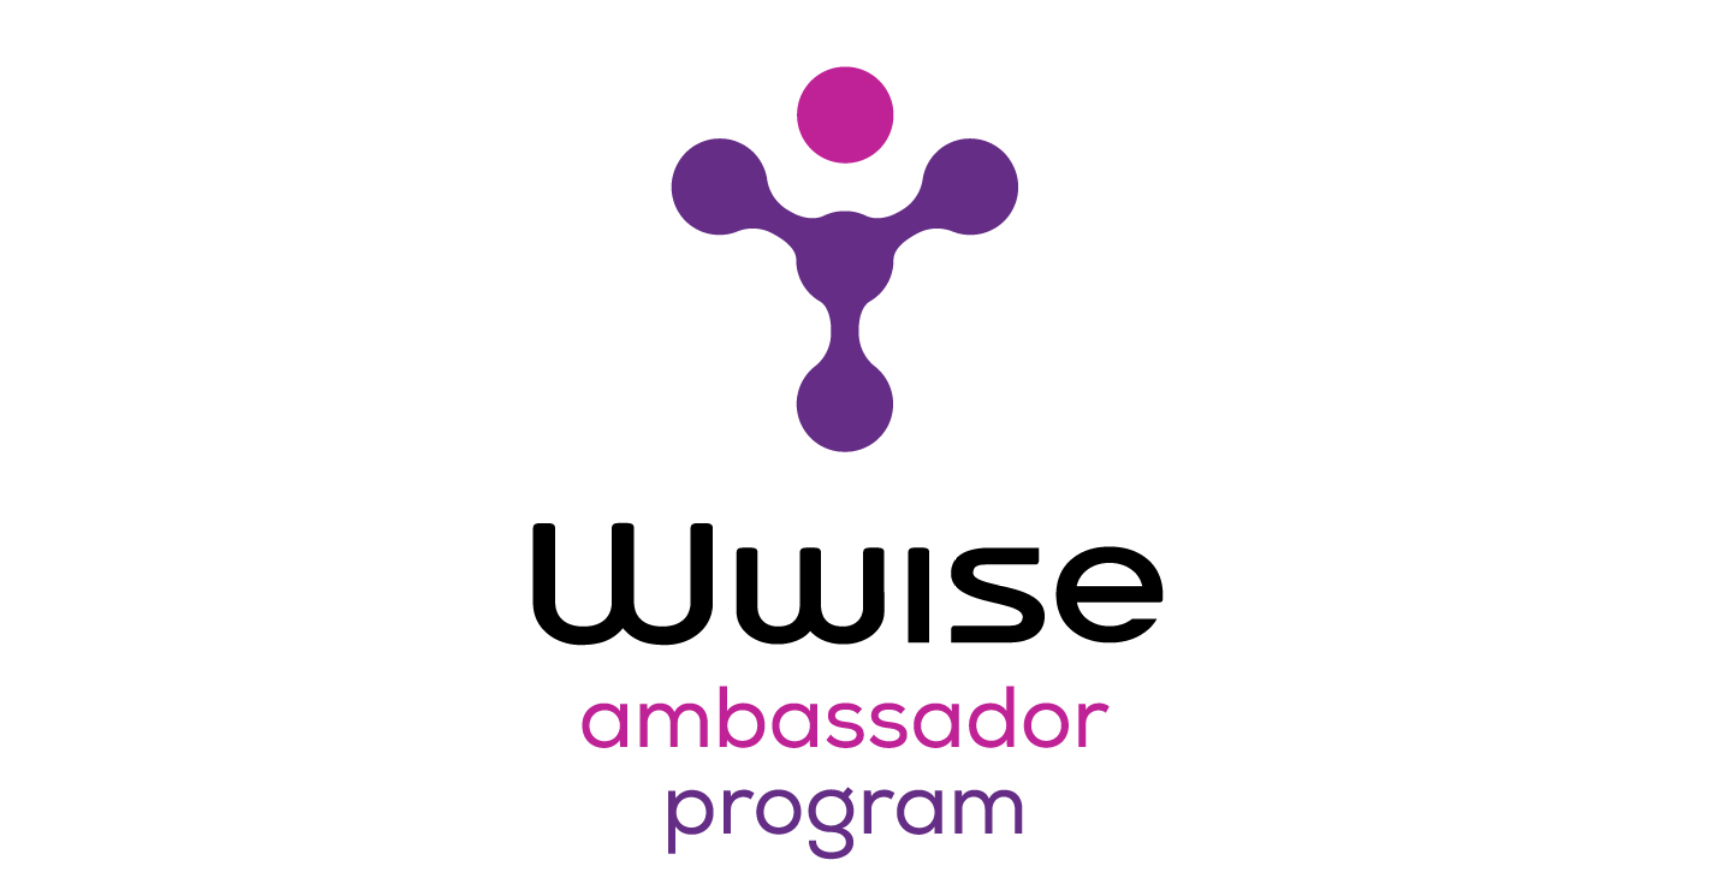 wwise ambassador program